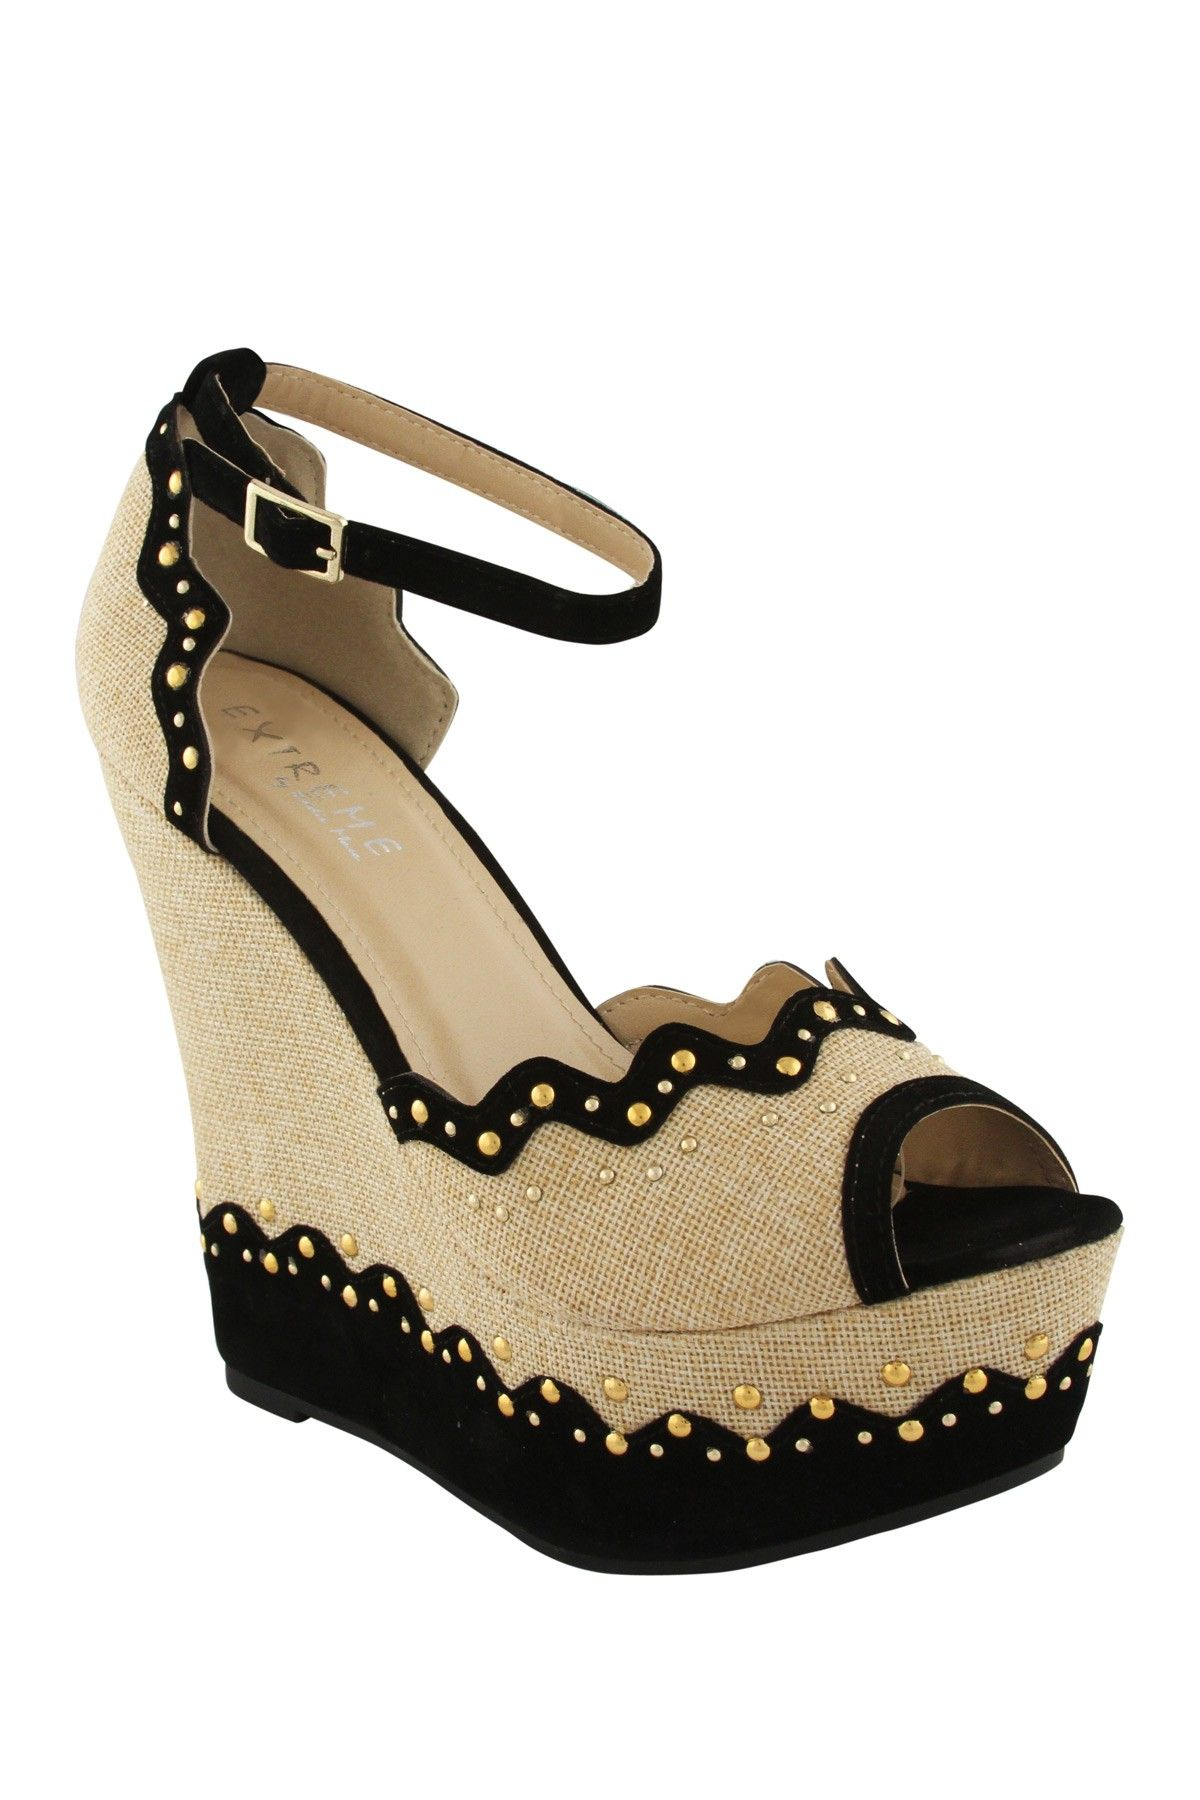 120a138b626 EXTREME By Eddie Marc Bonnie Canvas Studded Wedge on HauteLook ...